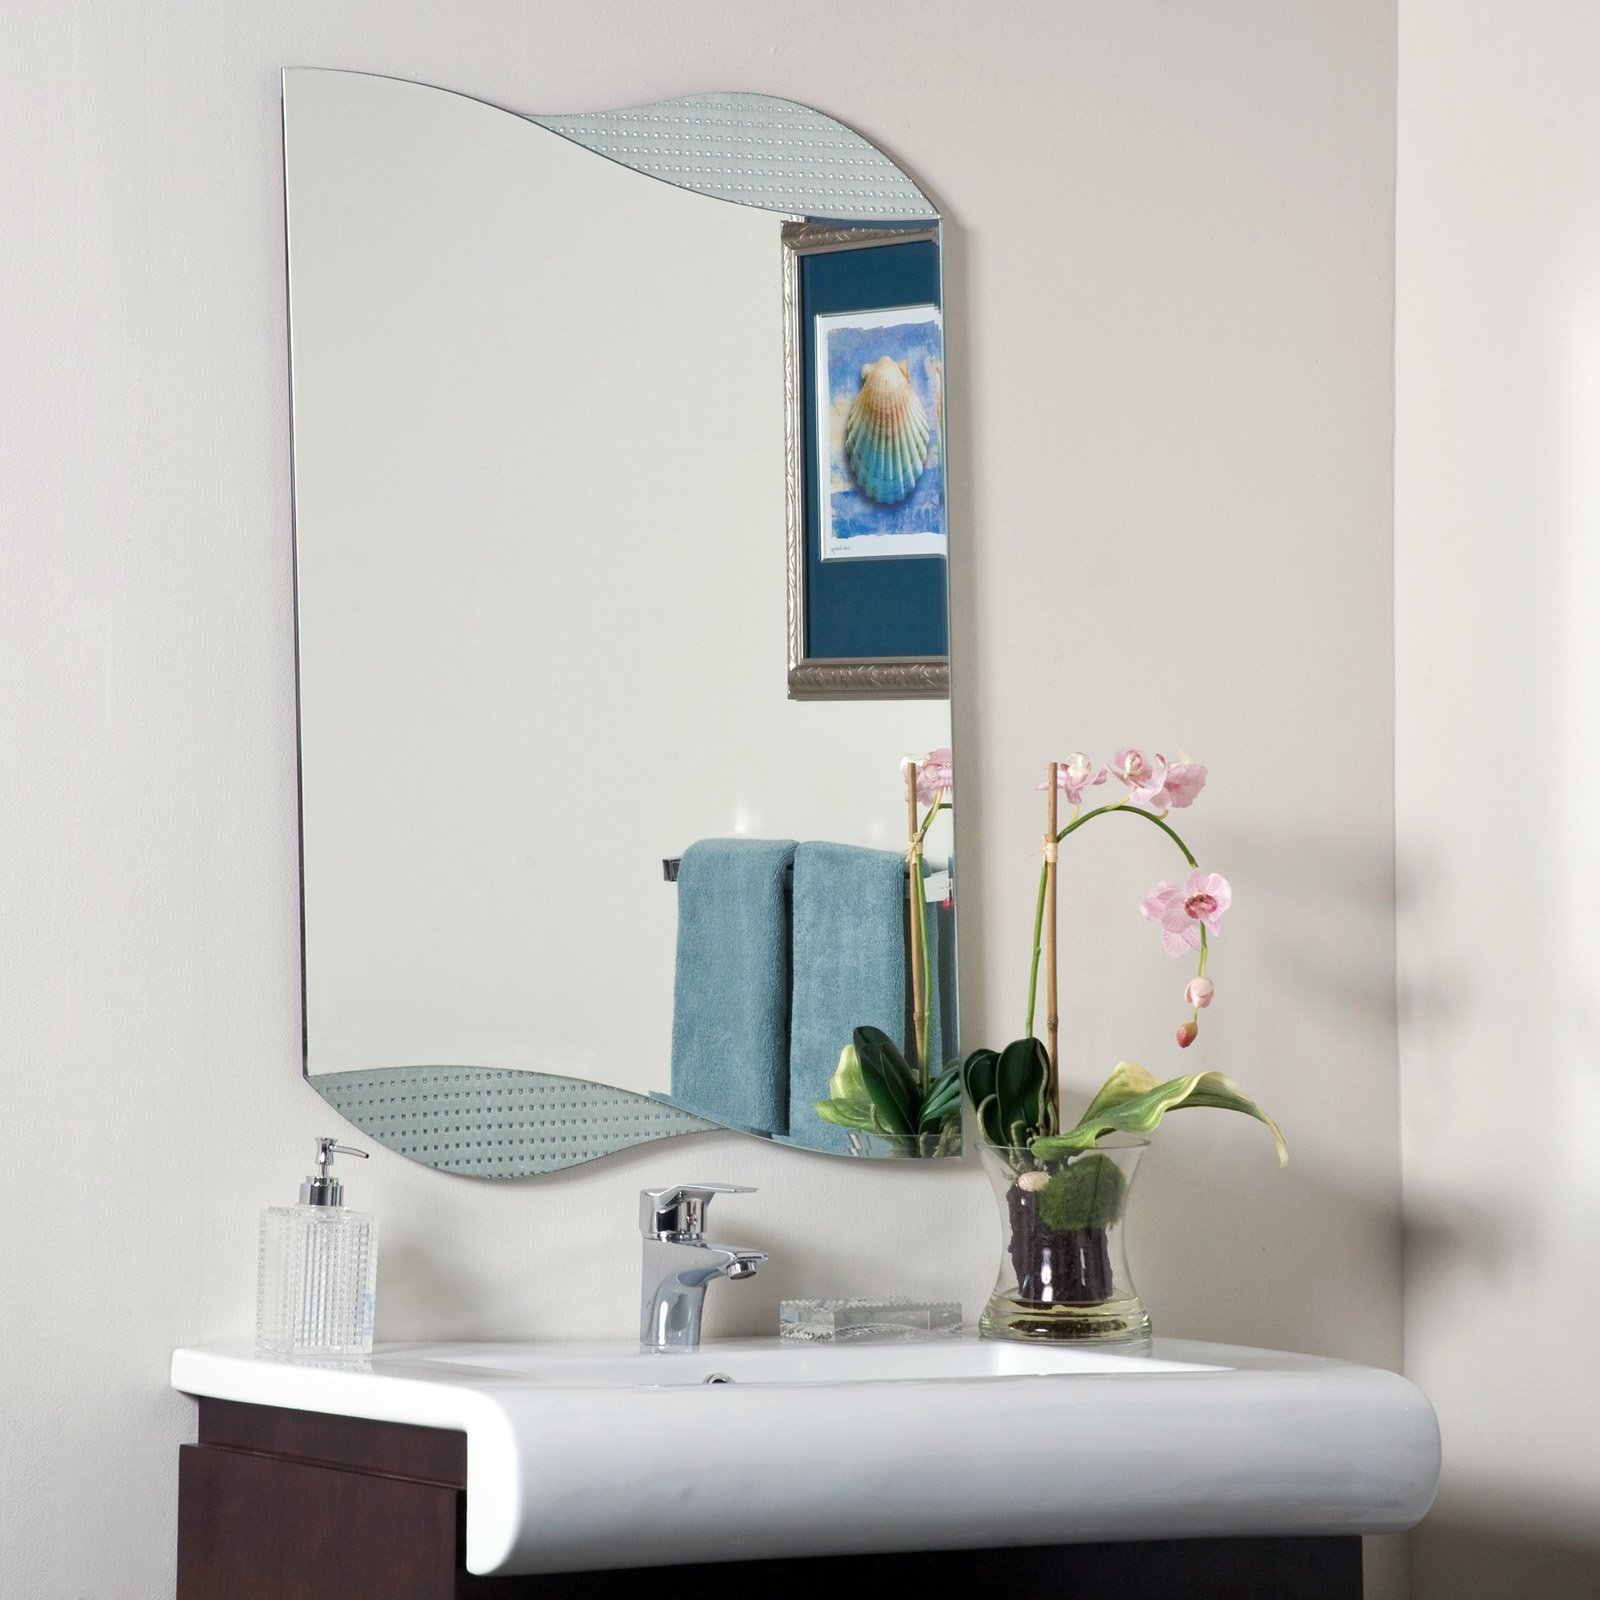 Décor Wonderland Sonia Modern Frameless Bathroom Mirror 23.6W x 33.5H in. by Decor Wonderland of US